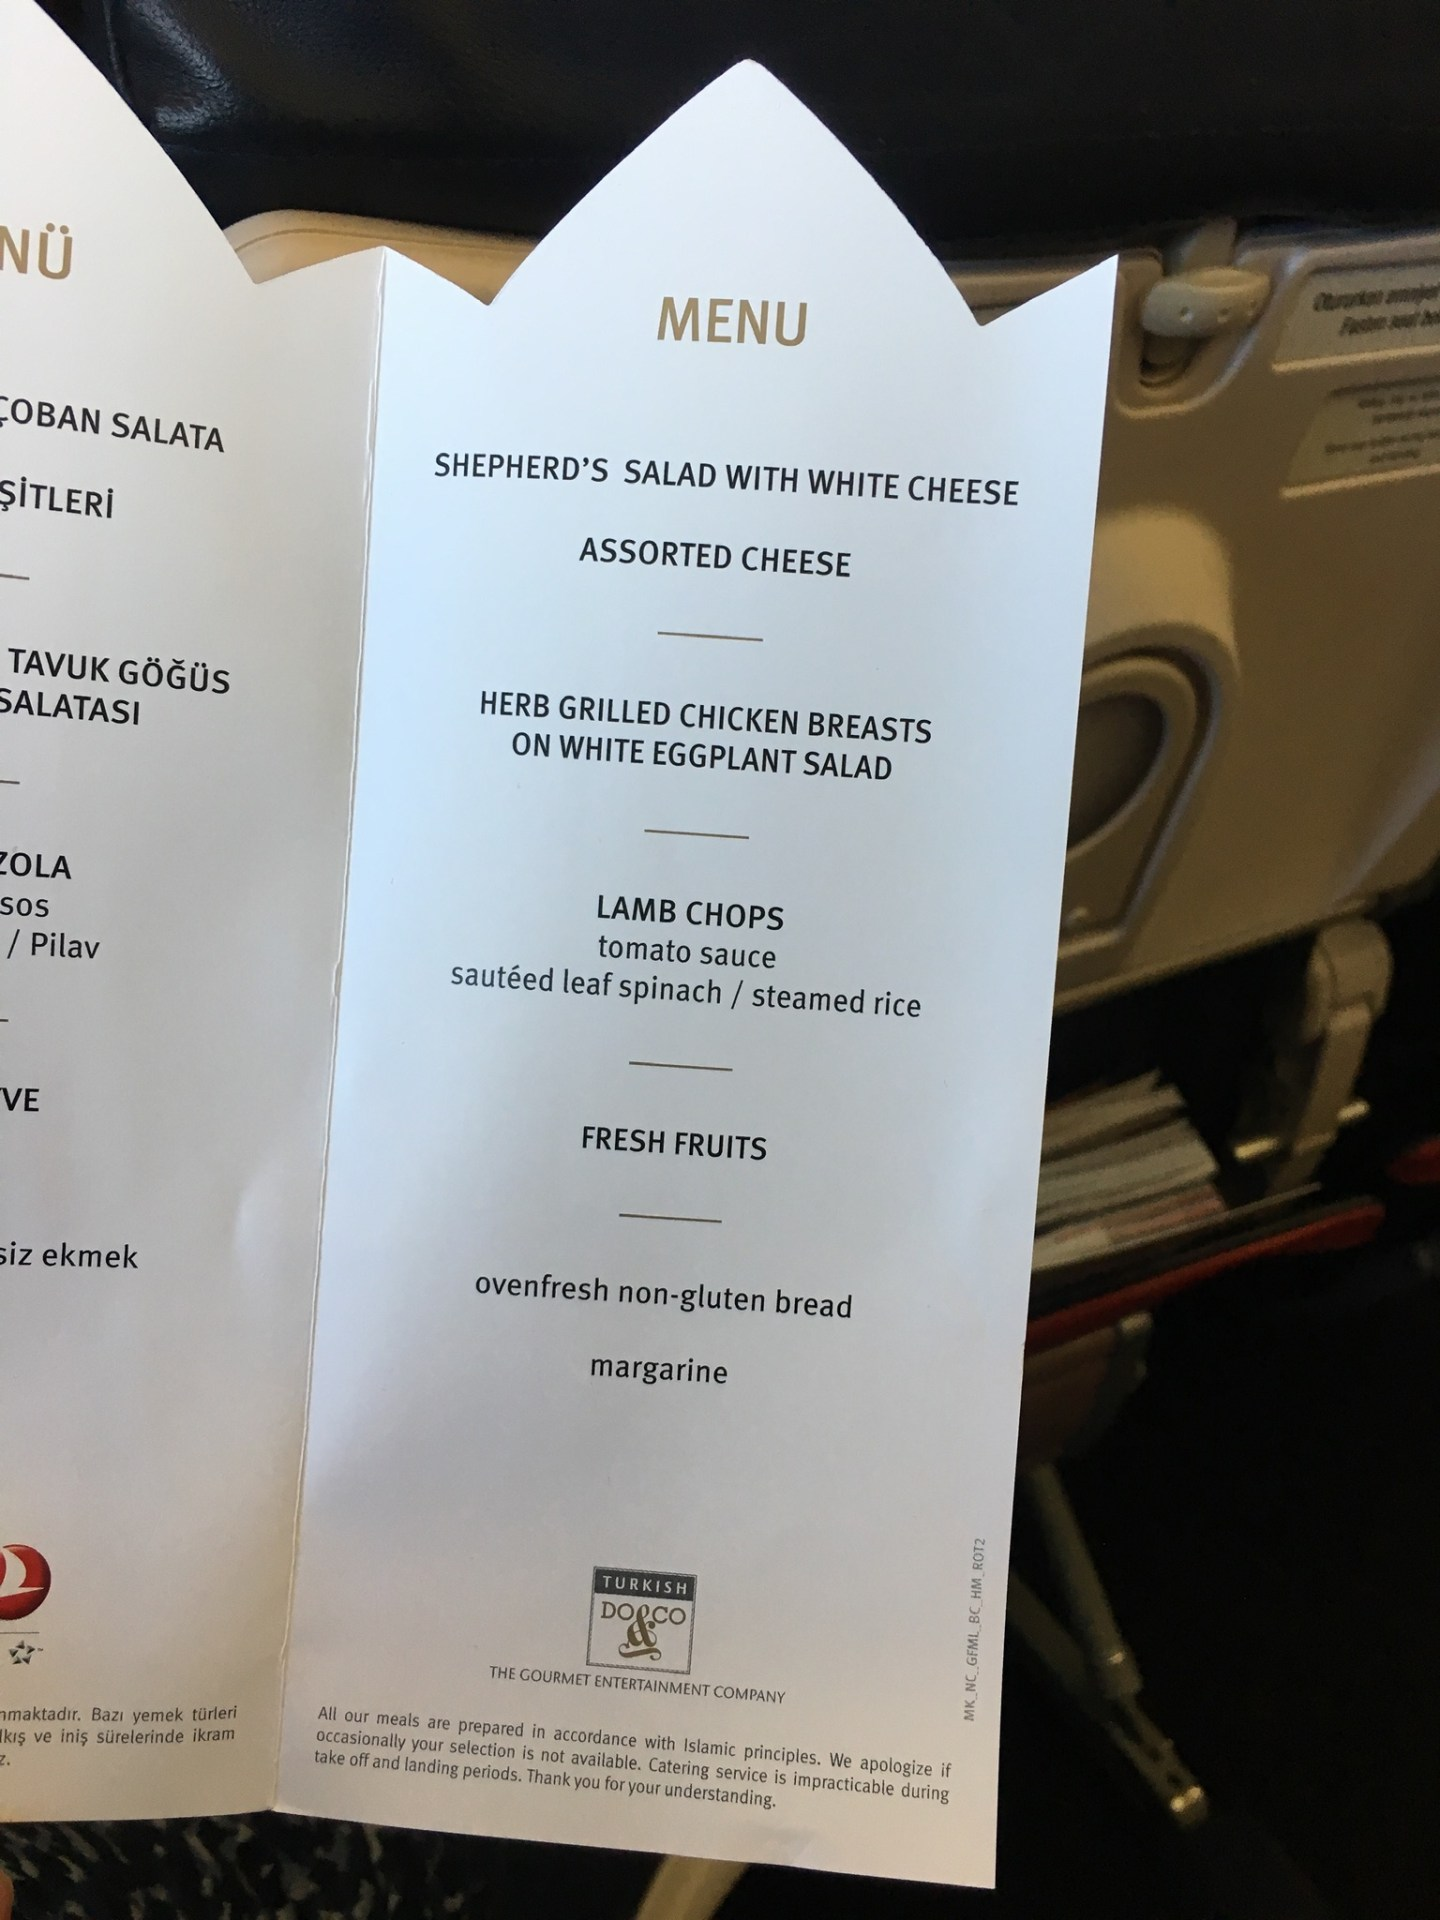 gluten free menu card on Turkish Airlines